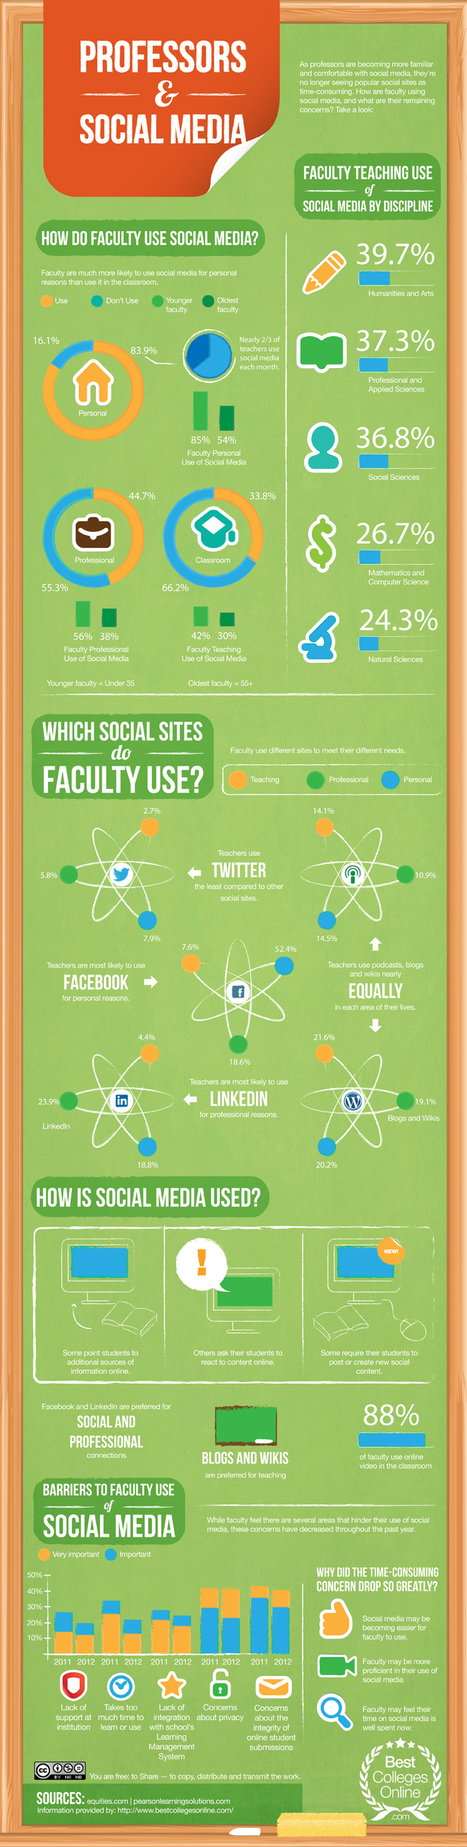 How Professors Use Social Media [Infographic] | Social Media Today | Social Media 4 Education | Scoop.it